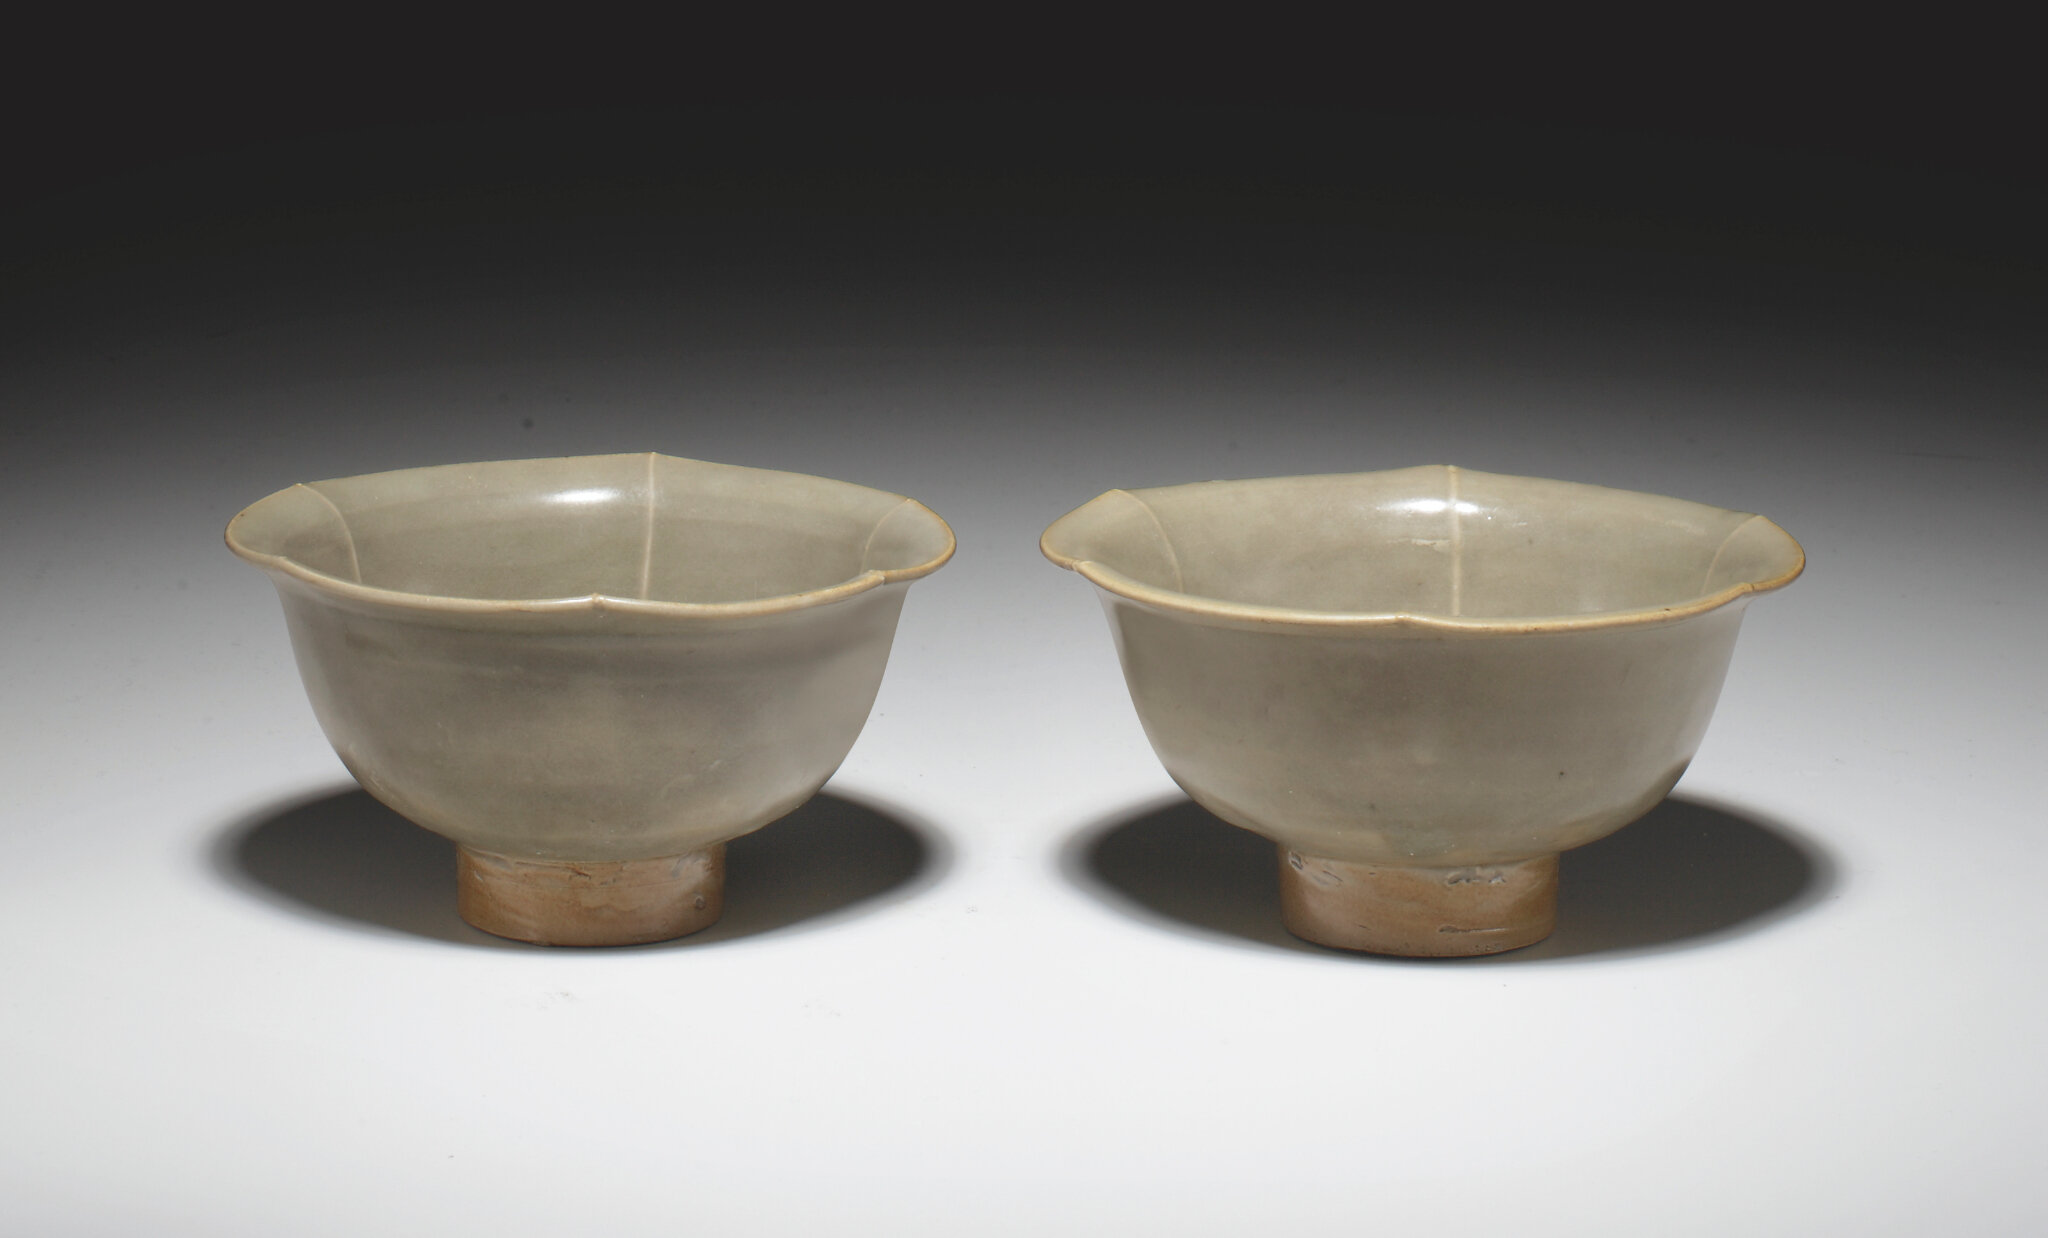 A pair of Yaozhou celadon flower-form bowls, Northern Song dynasty, 11th century